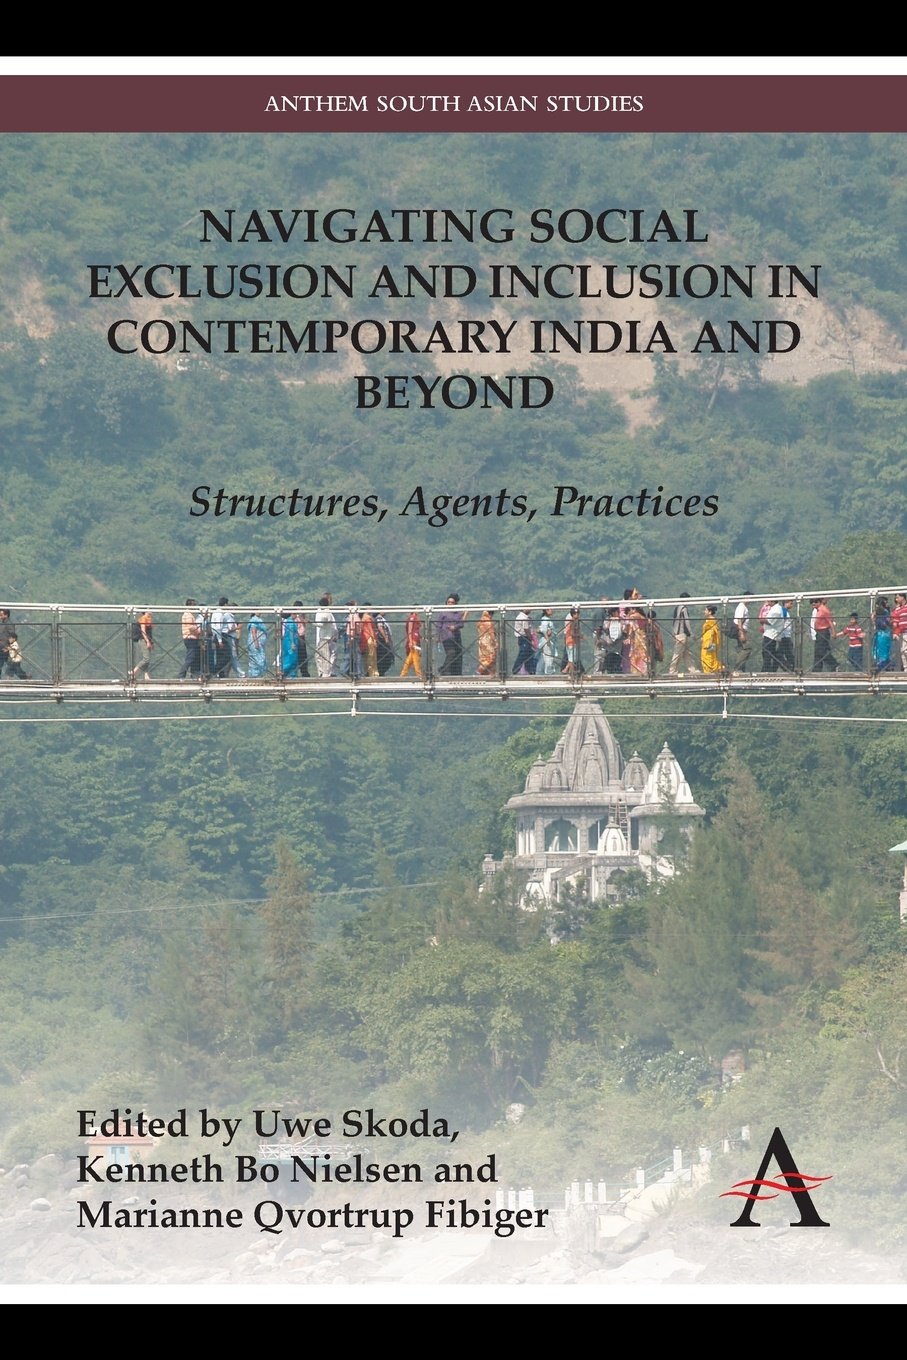 Navigating Social Exclusion and Inclusion in Contemporary India and Beyond. Structures, Agents, Practices